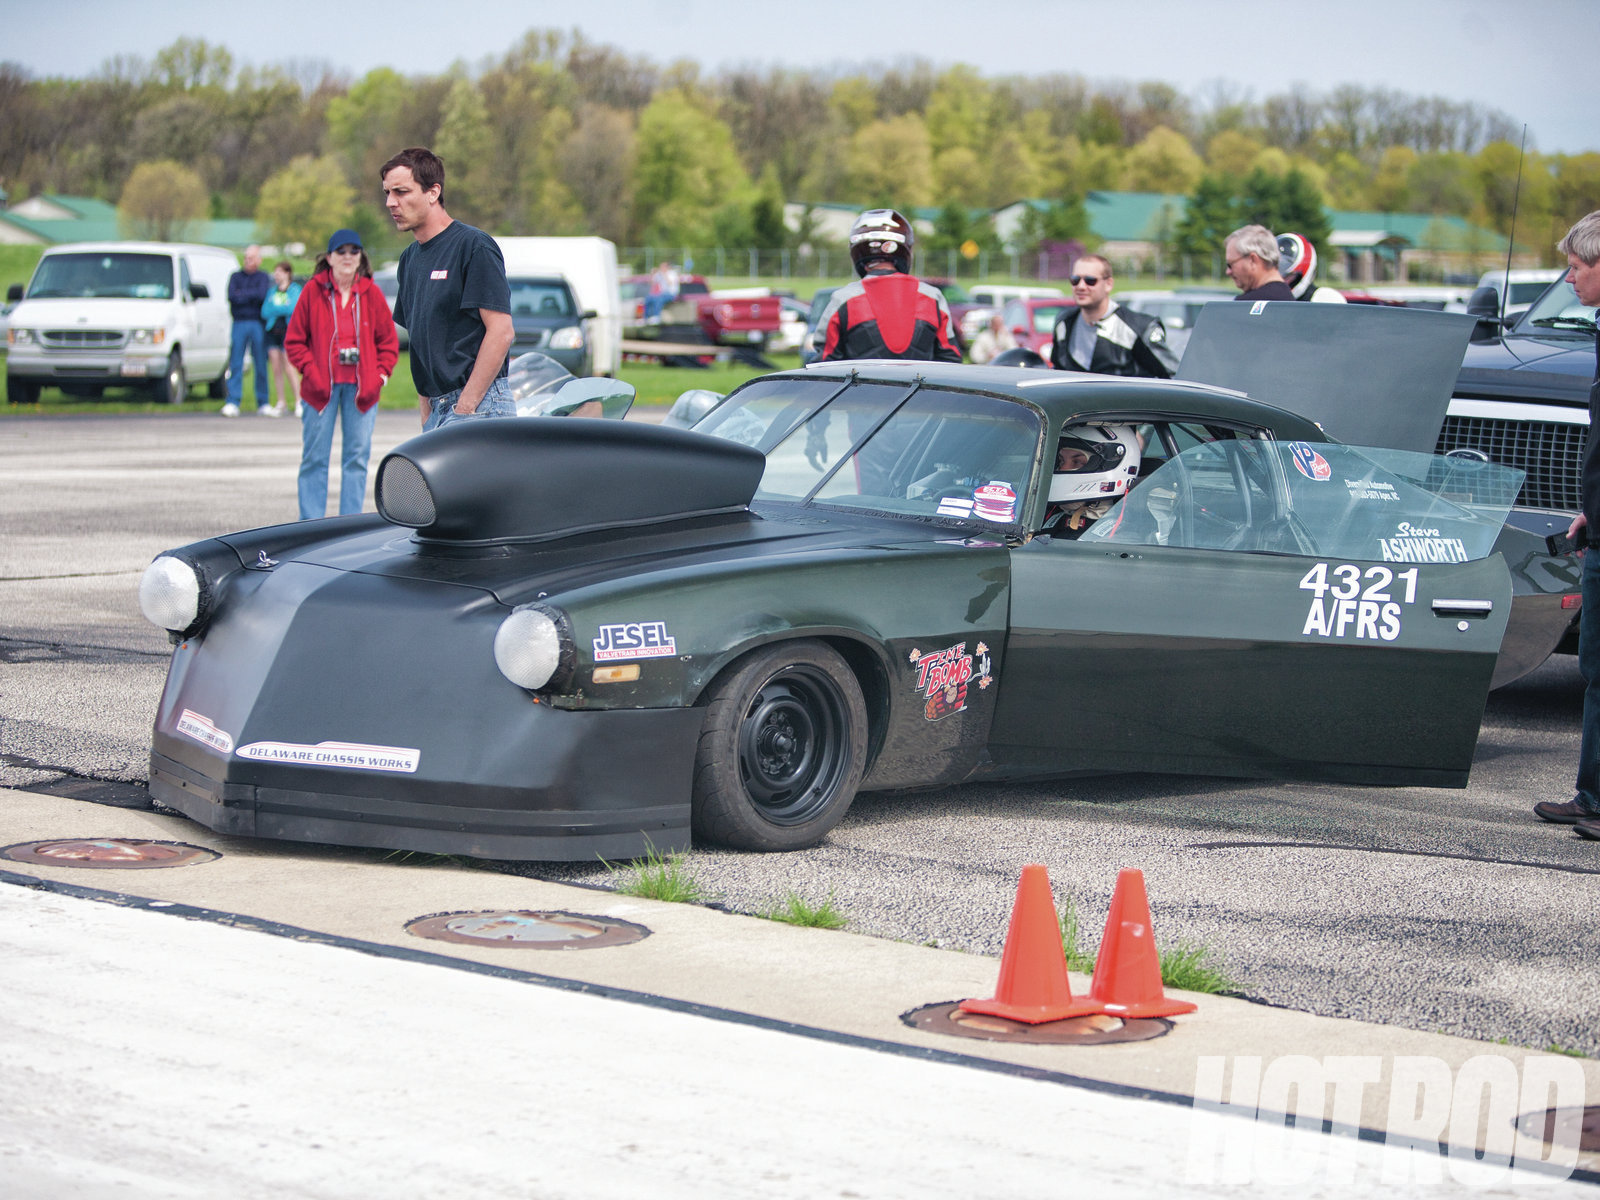 """The Matyjasik brothers were running a Buick NASCAR engine that was good for 208.530 in the A/Fuel Real Street class with Mike Matyjasik behind the wheel, fast enough to take the win in the class and earn a trophy jacket. When his brother David took the wheel later in the C/Fuel Super Street class, the '71 """"Time Bomb"""" Camaro clocked a 205.010. Note the disco-ball headlight covers the brothers vacuum-molded from PVC recessed lighting diffusers."""